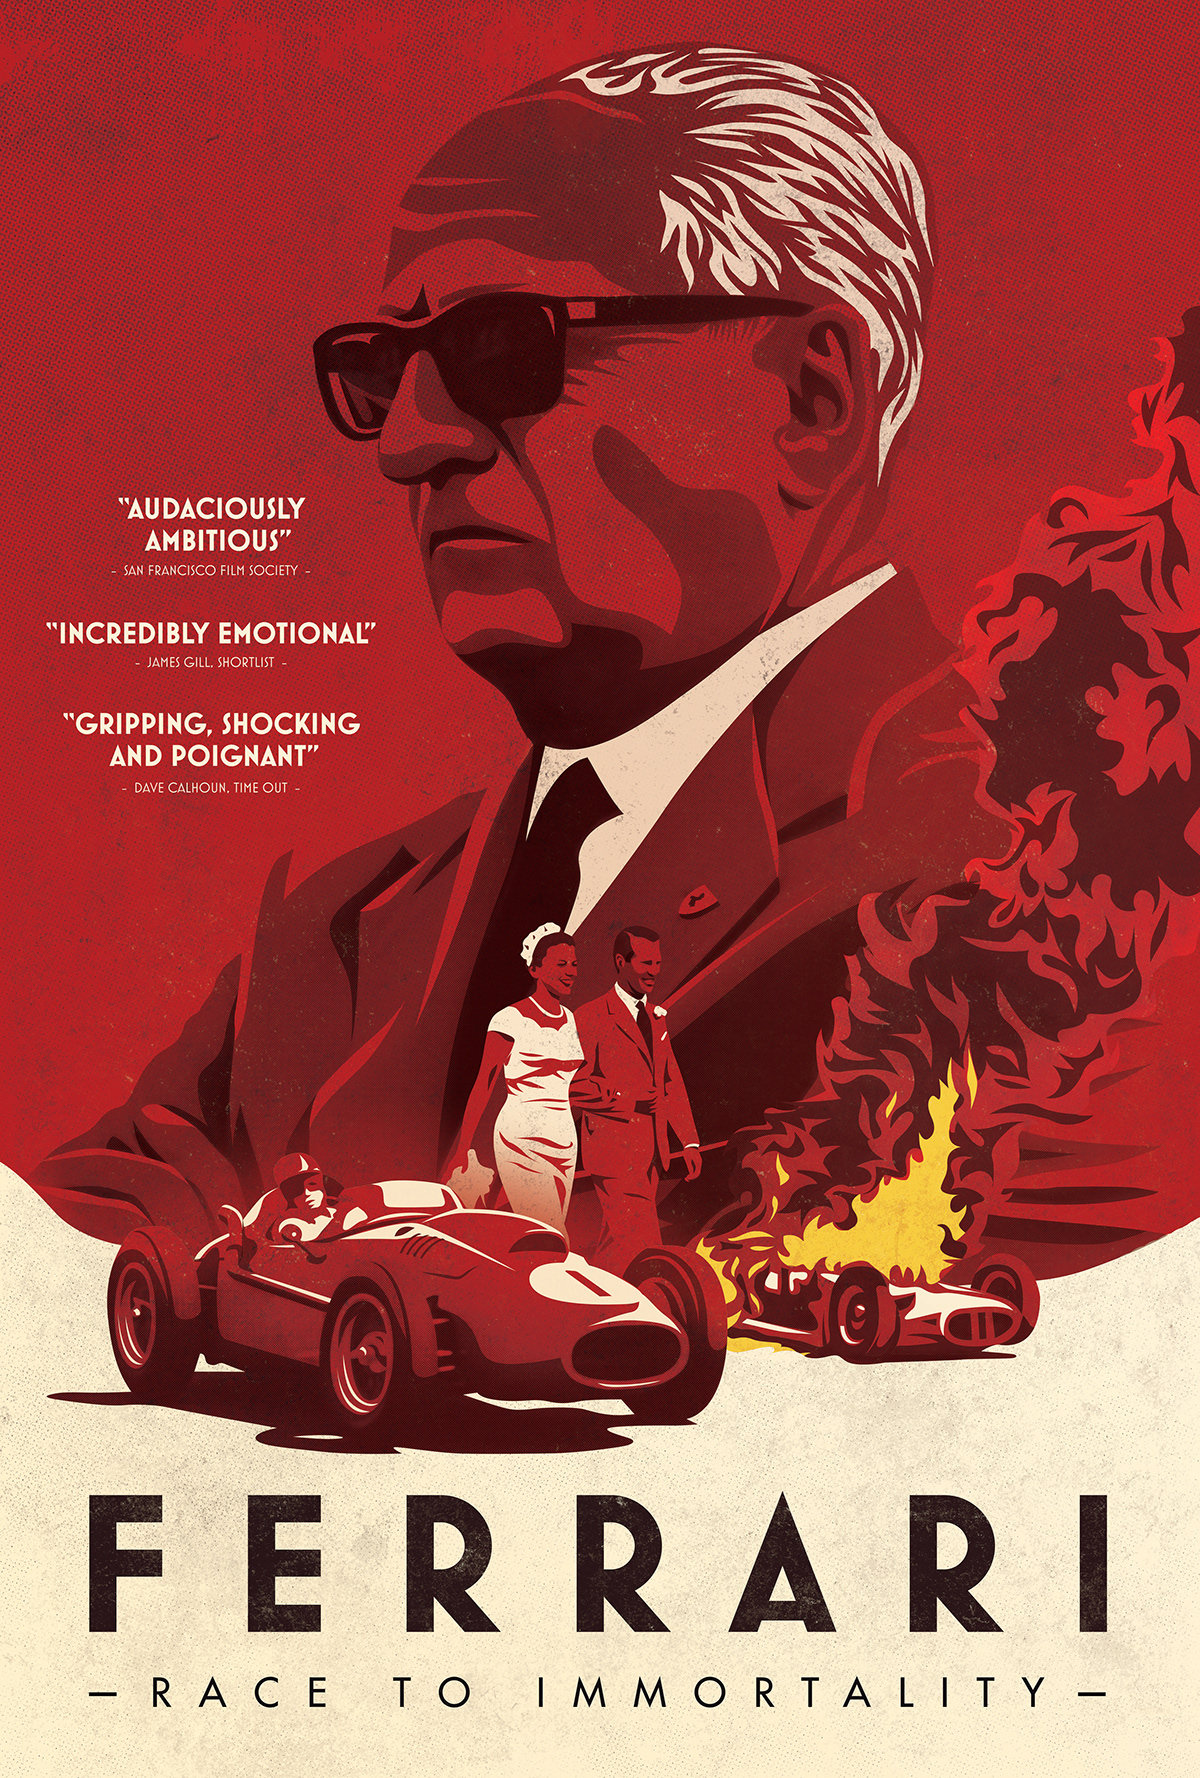 Ferrari Race To Immortality Poster Concept On Wacom Gallery